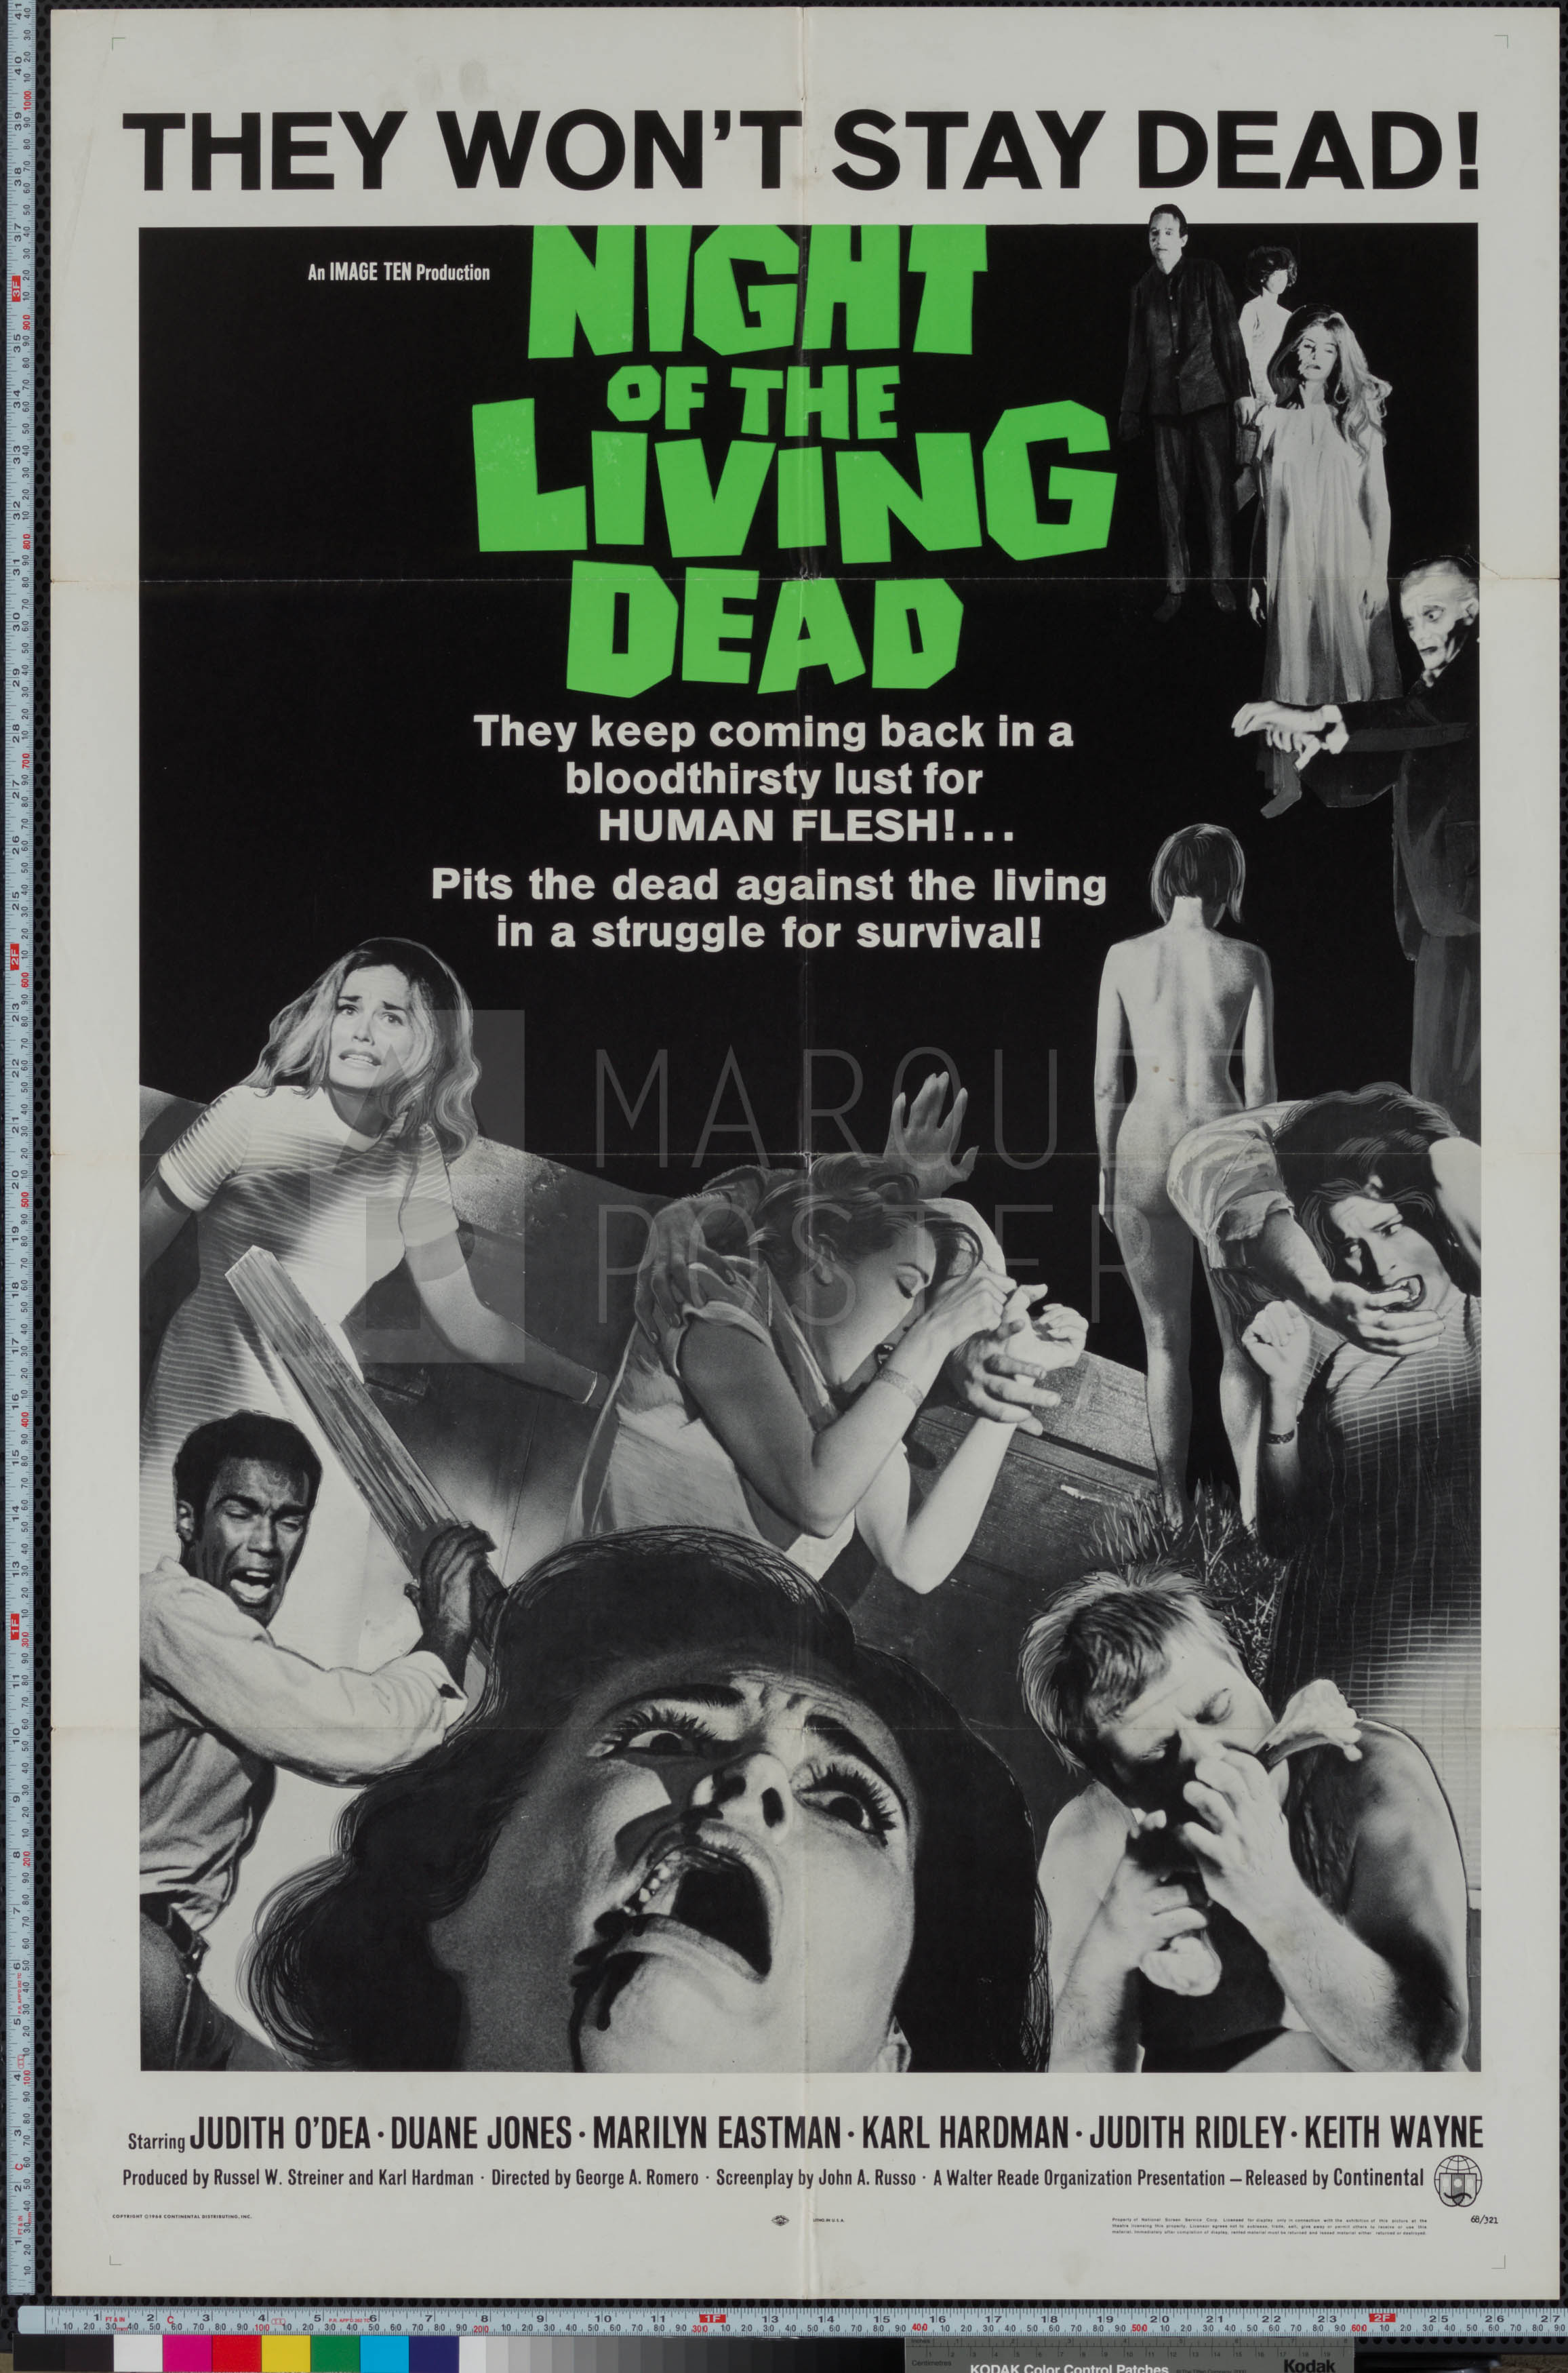 86-night-of-the-living-dead-bright-green-title-style-us-1-sheet-1968-02